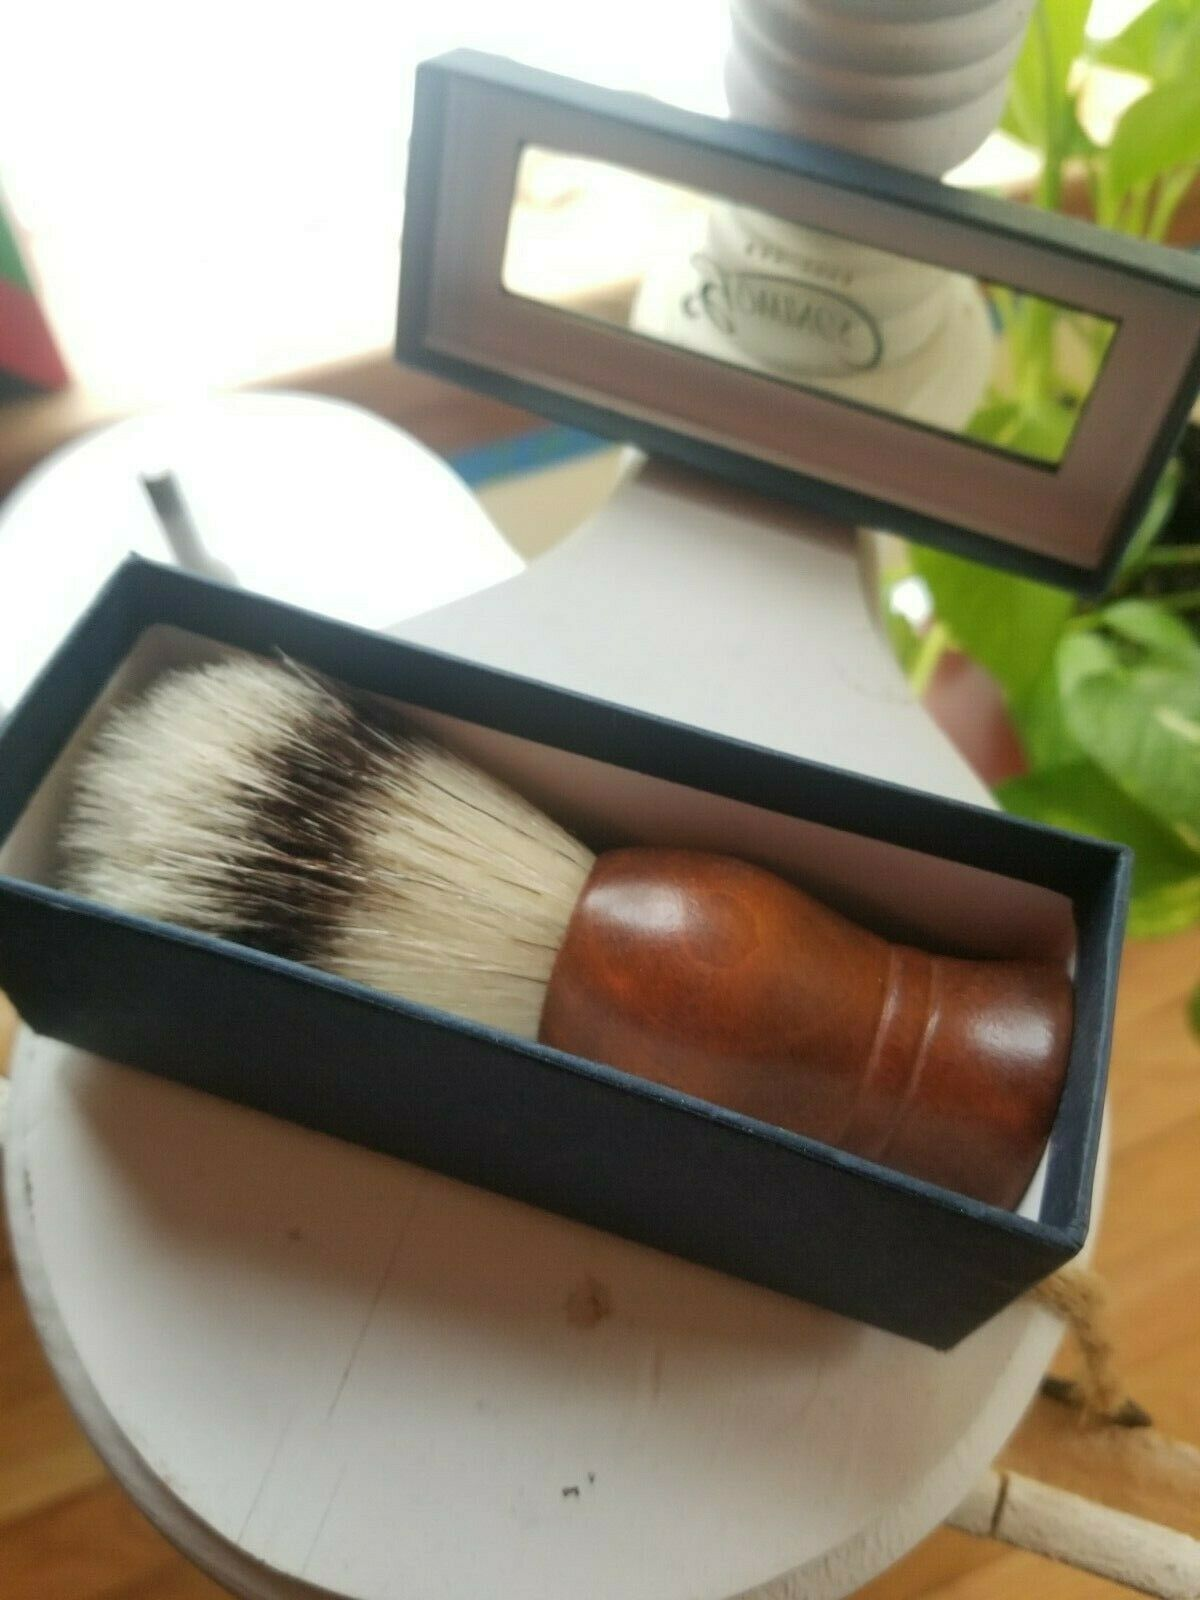 Gowing's Shave Brush New Great Condition Men's Shaving and Grooming